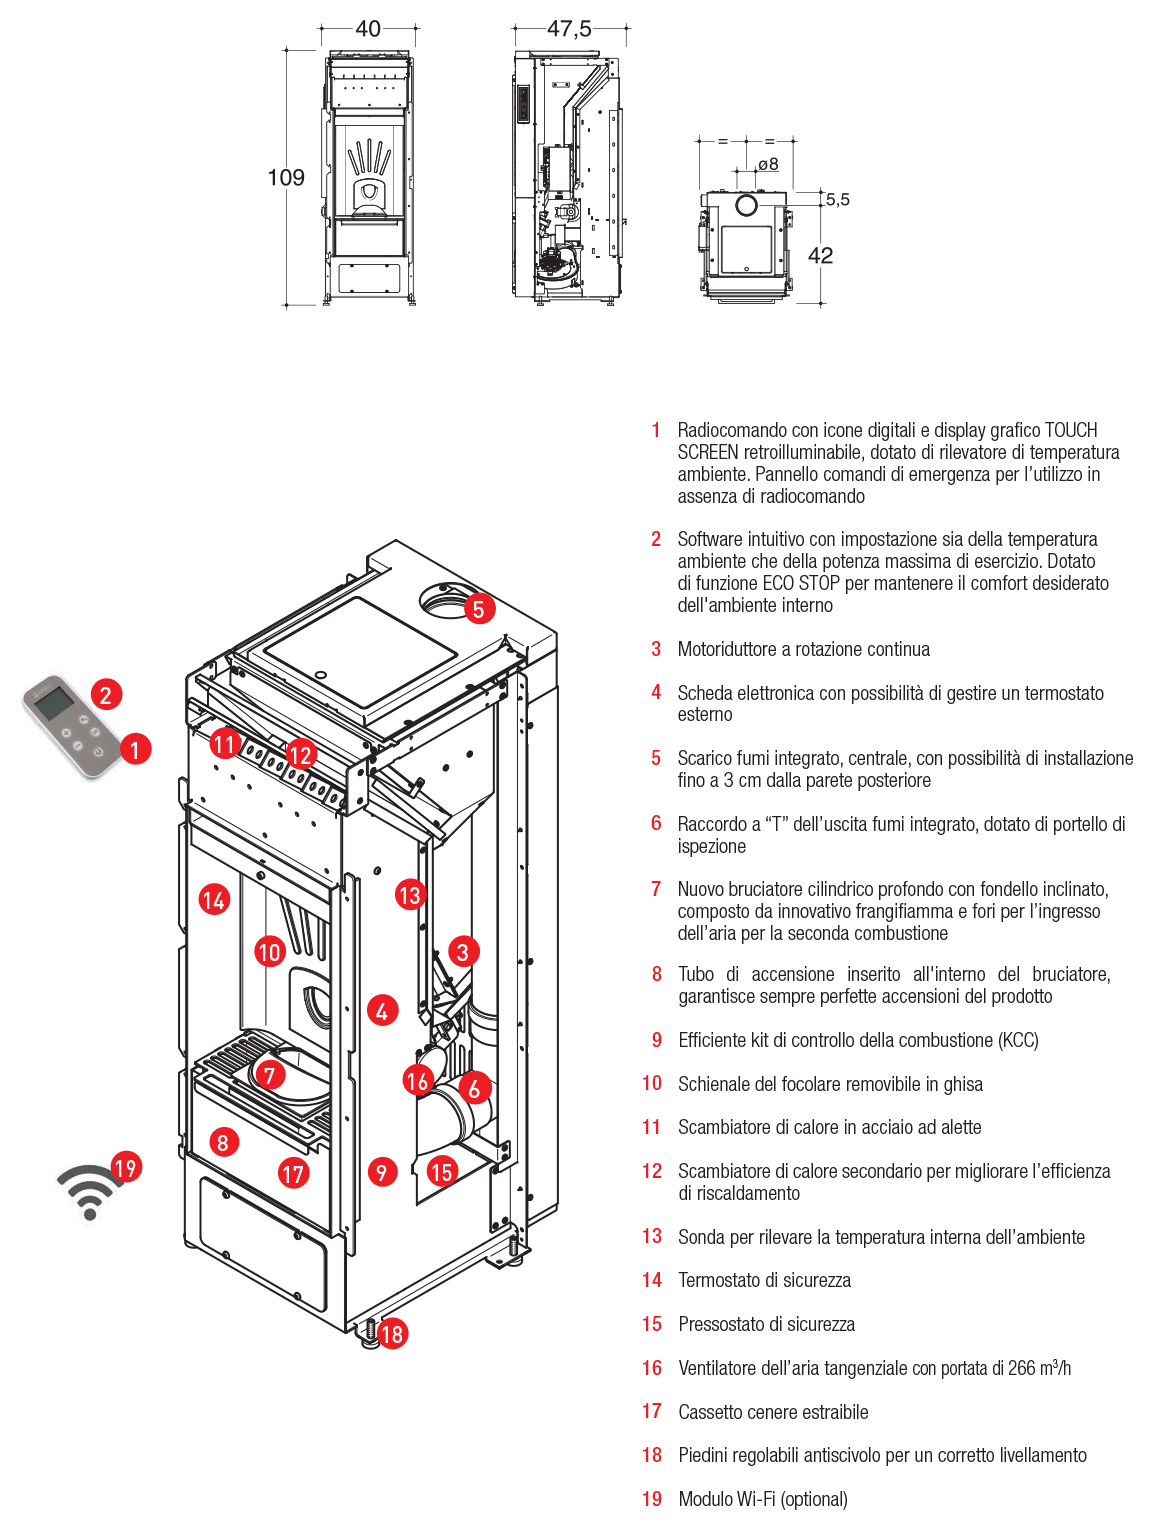 pellet stove with a system of forced convection integrated smoke outlet